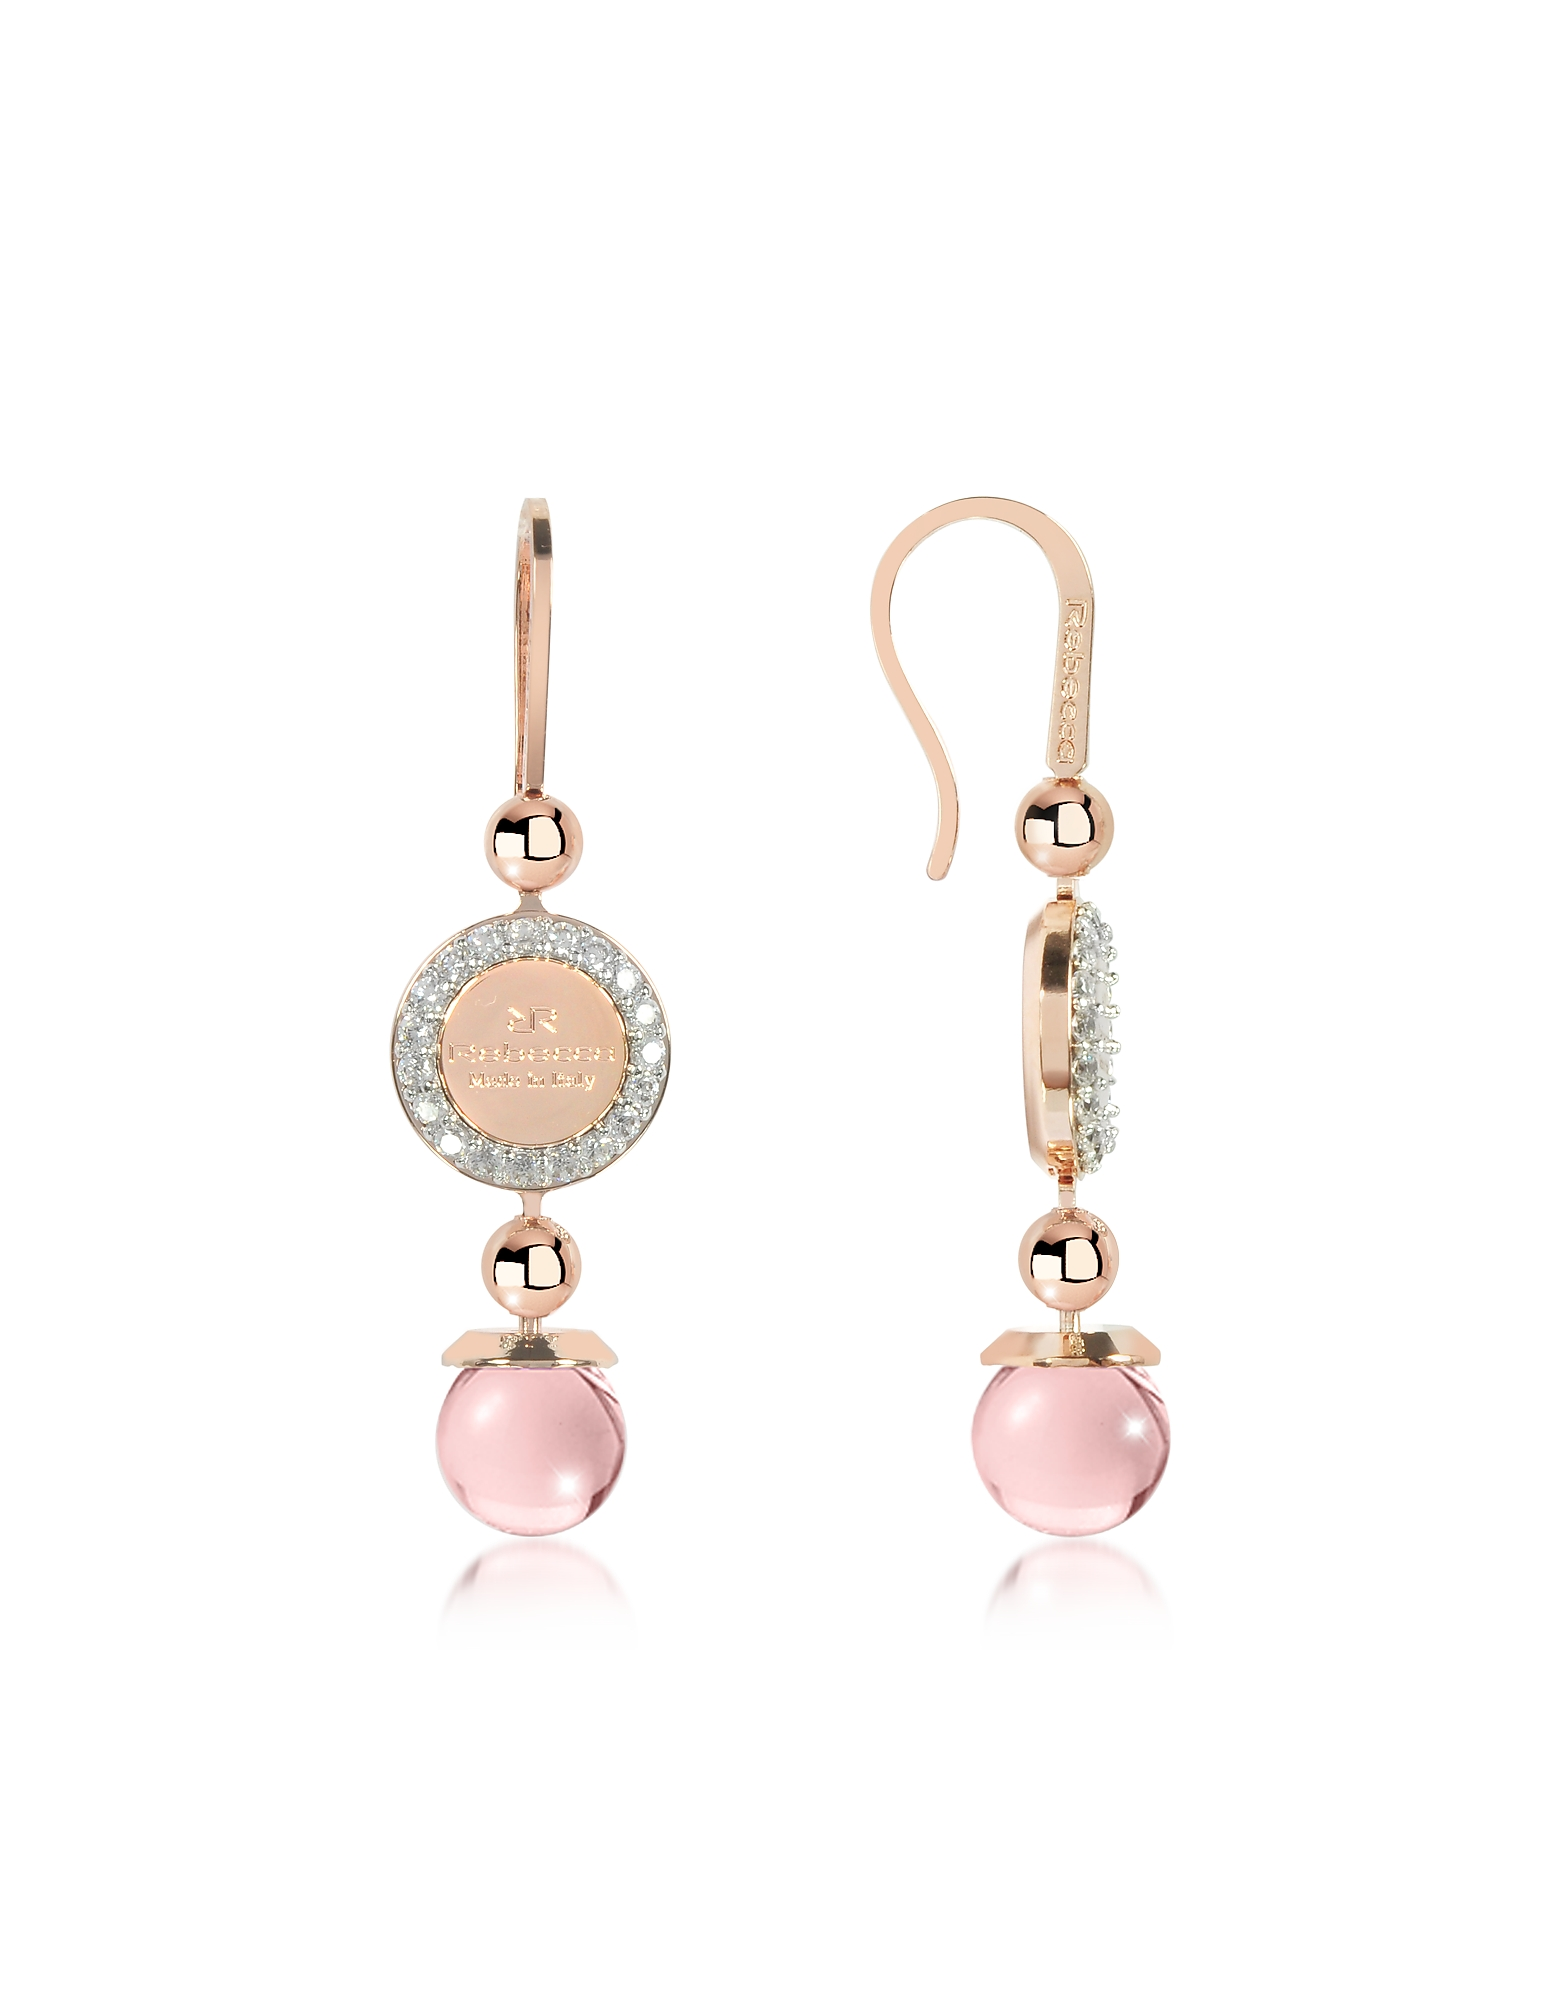 Rebecca Earrings, Boulevard Stone Rose Gold Over Bronze Dangle Earrings w/Pink Hydrothermal Stone